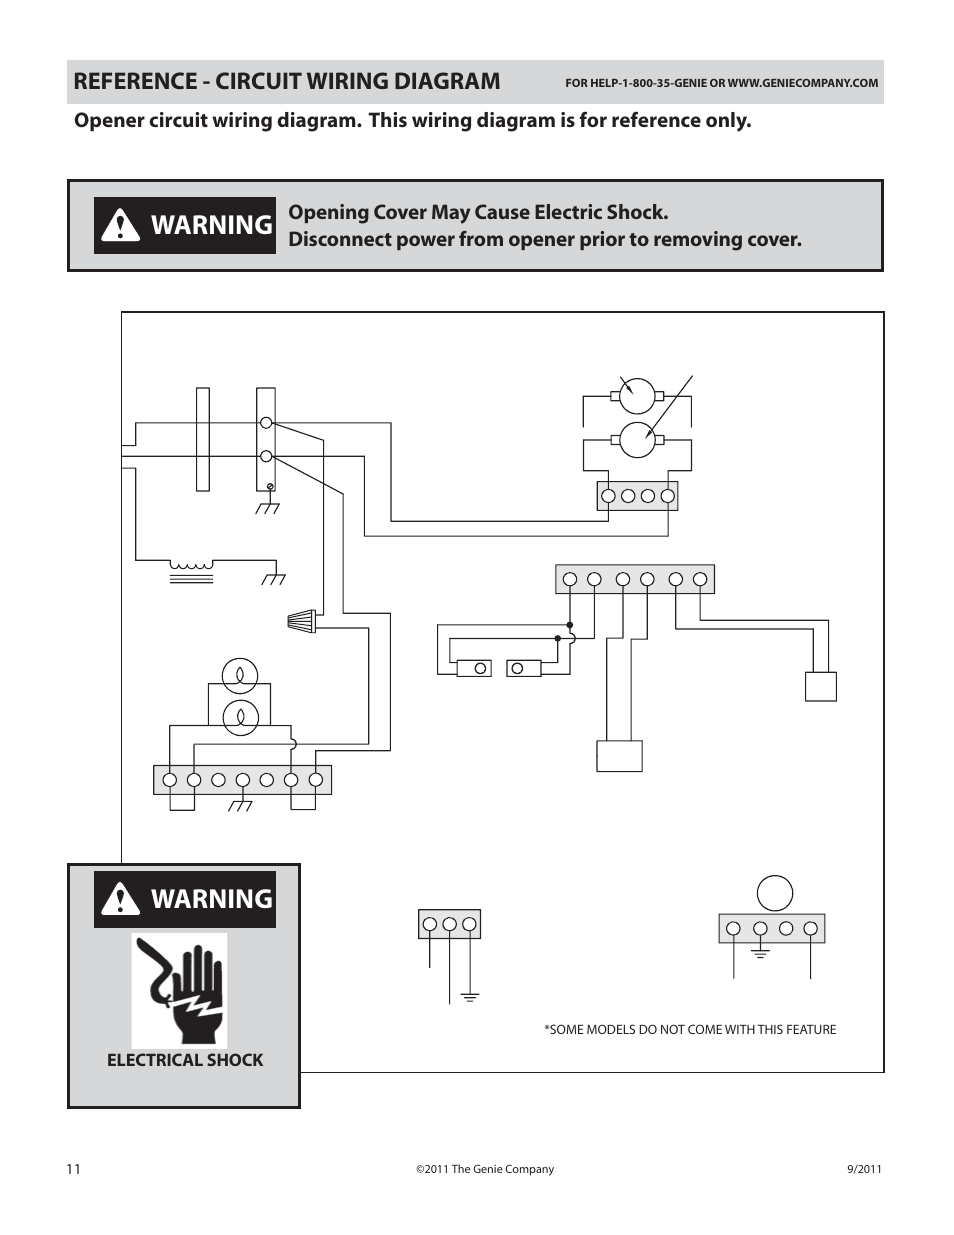 Warning Reference Circuit Wiring Diagram Power Cord